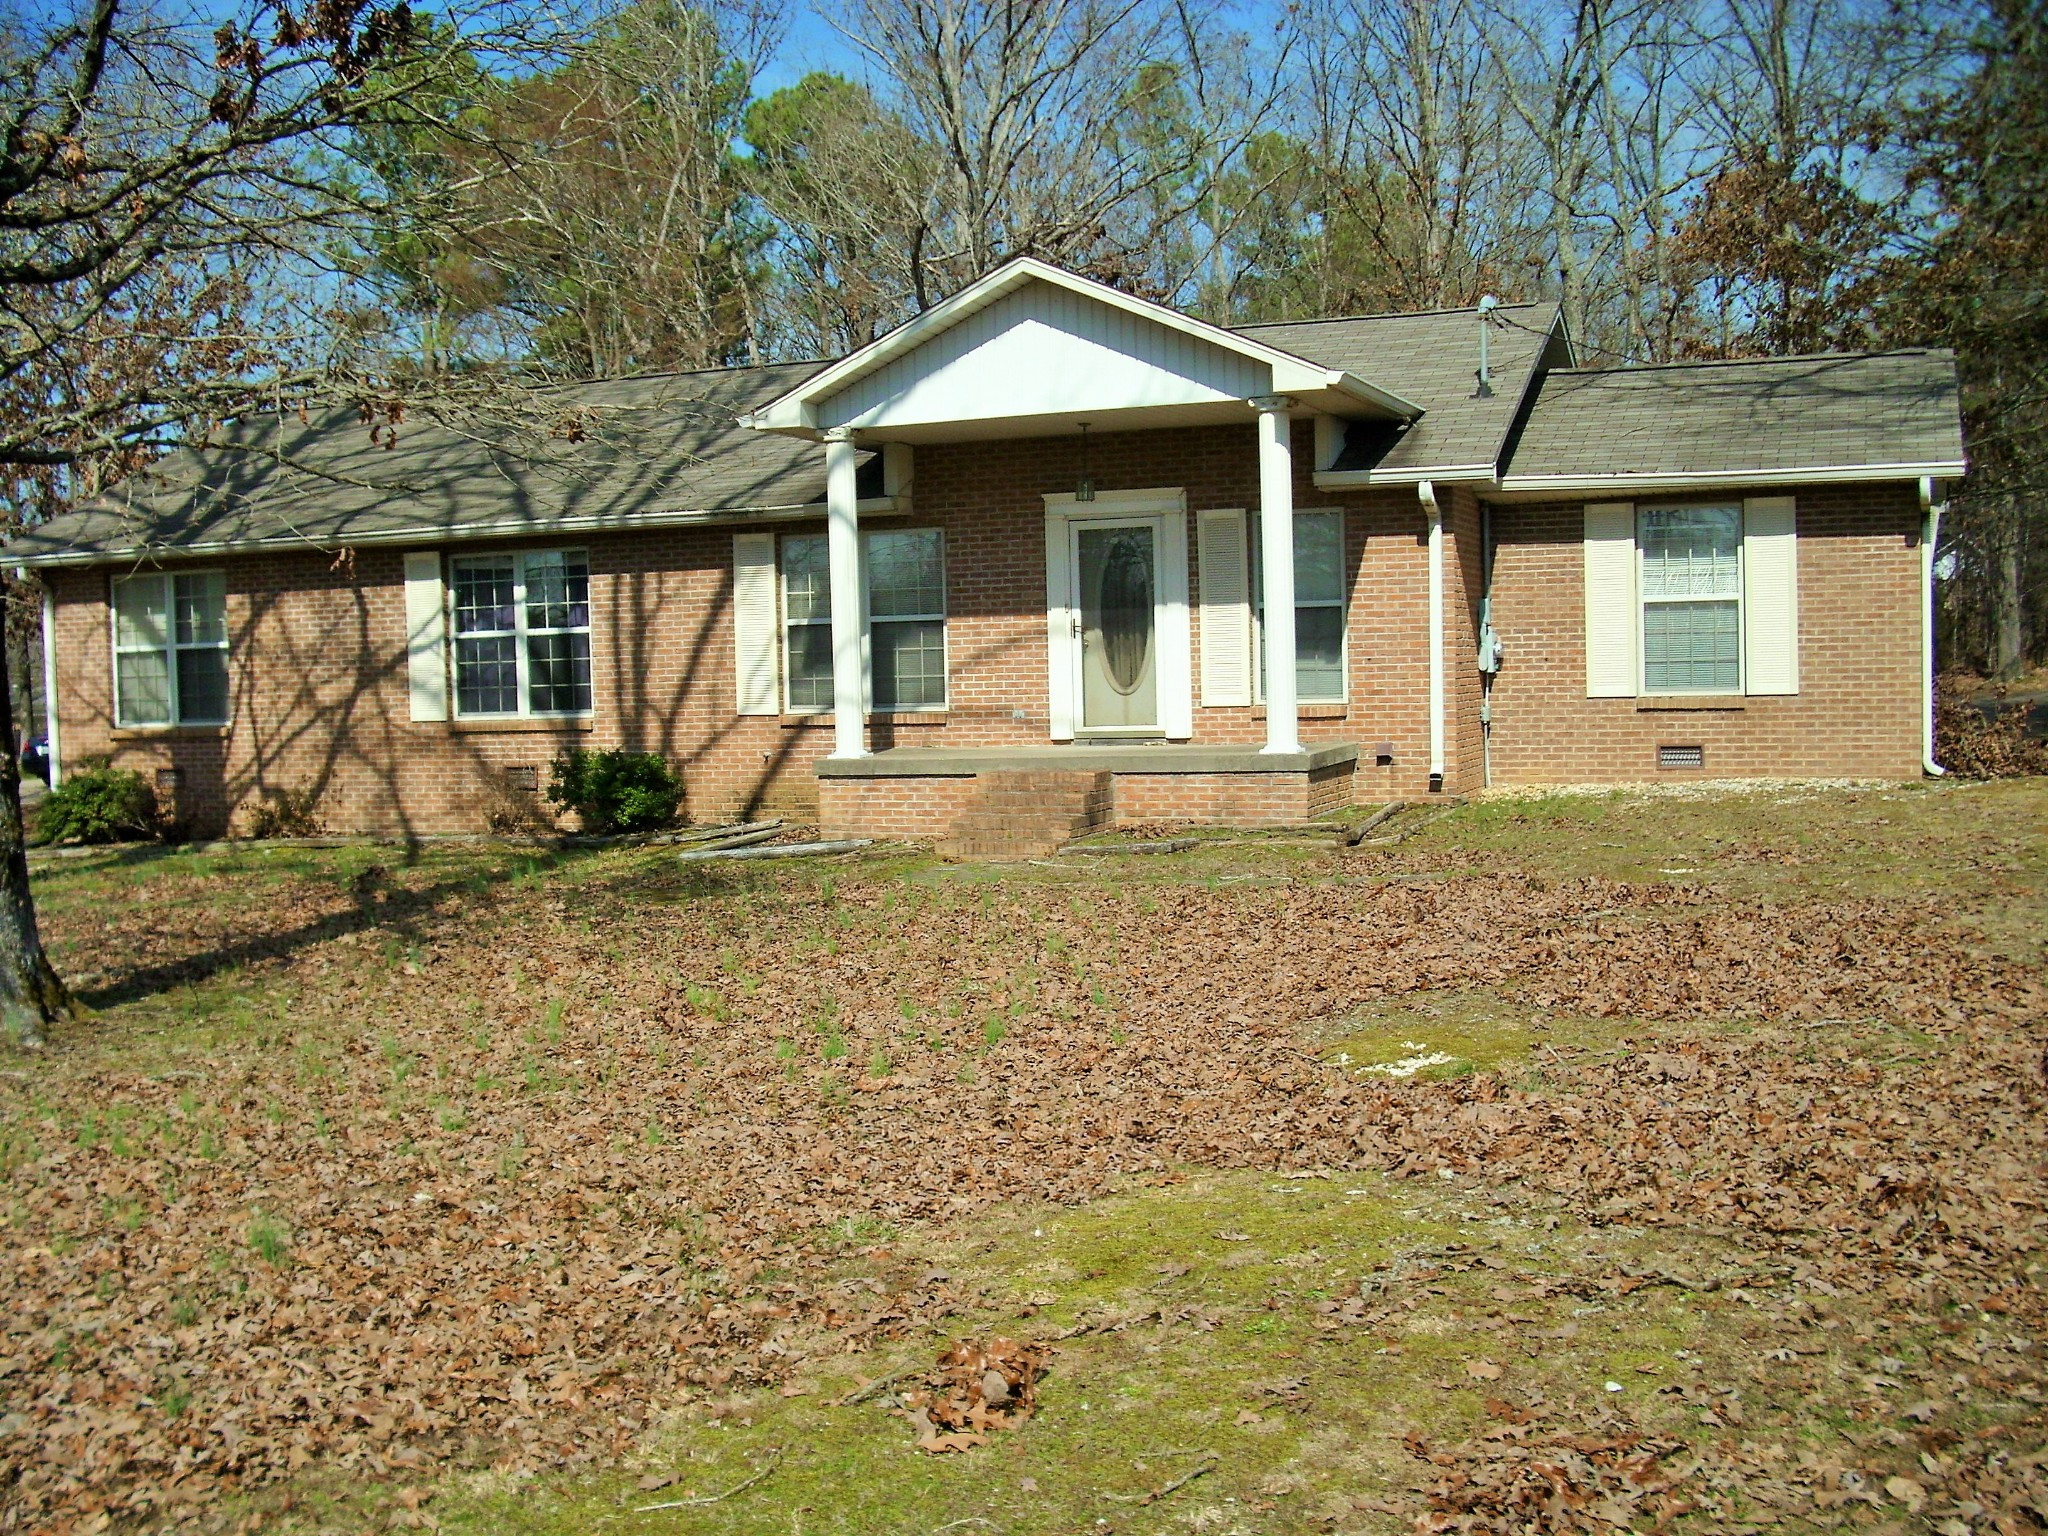 539 Callahan Dr, New Johnsonville, TN 37134 - New Johnsonville, TN real estate listing